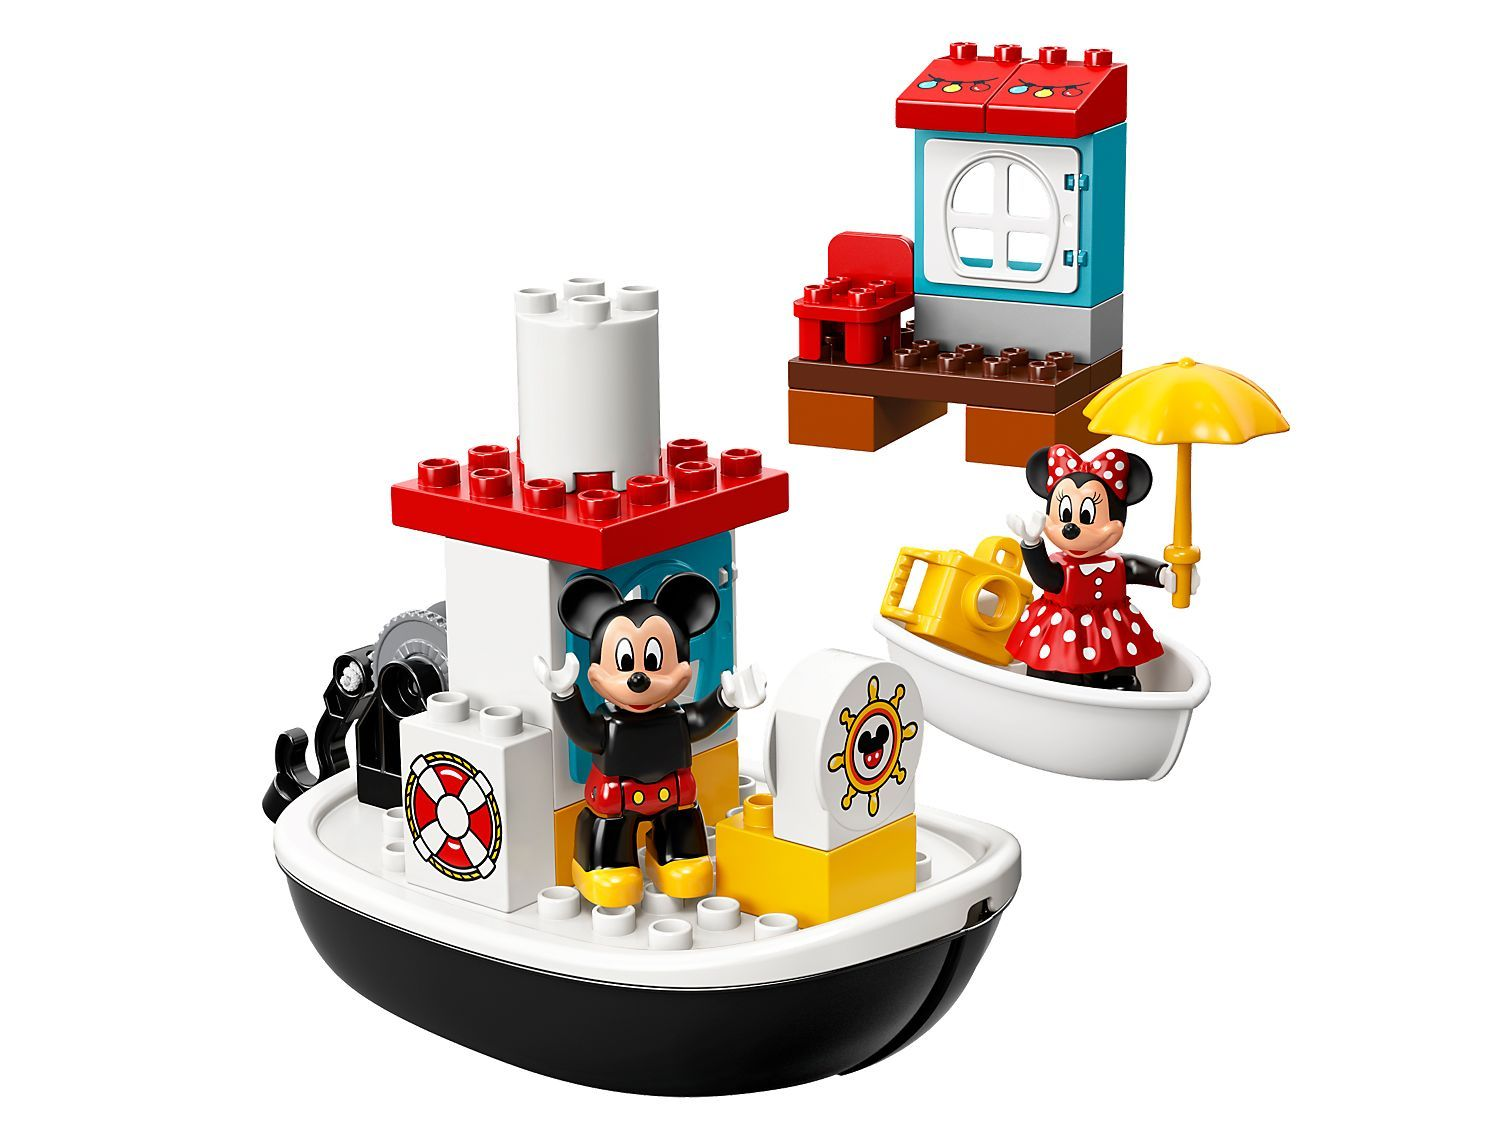 Mickey's Boat 10881 Disney™ Buy online at the Official